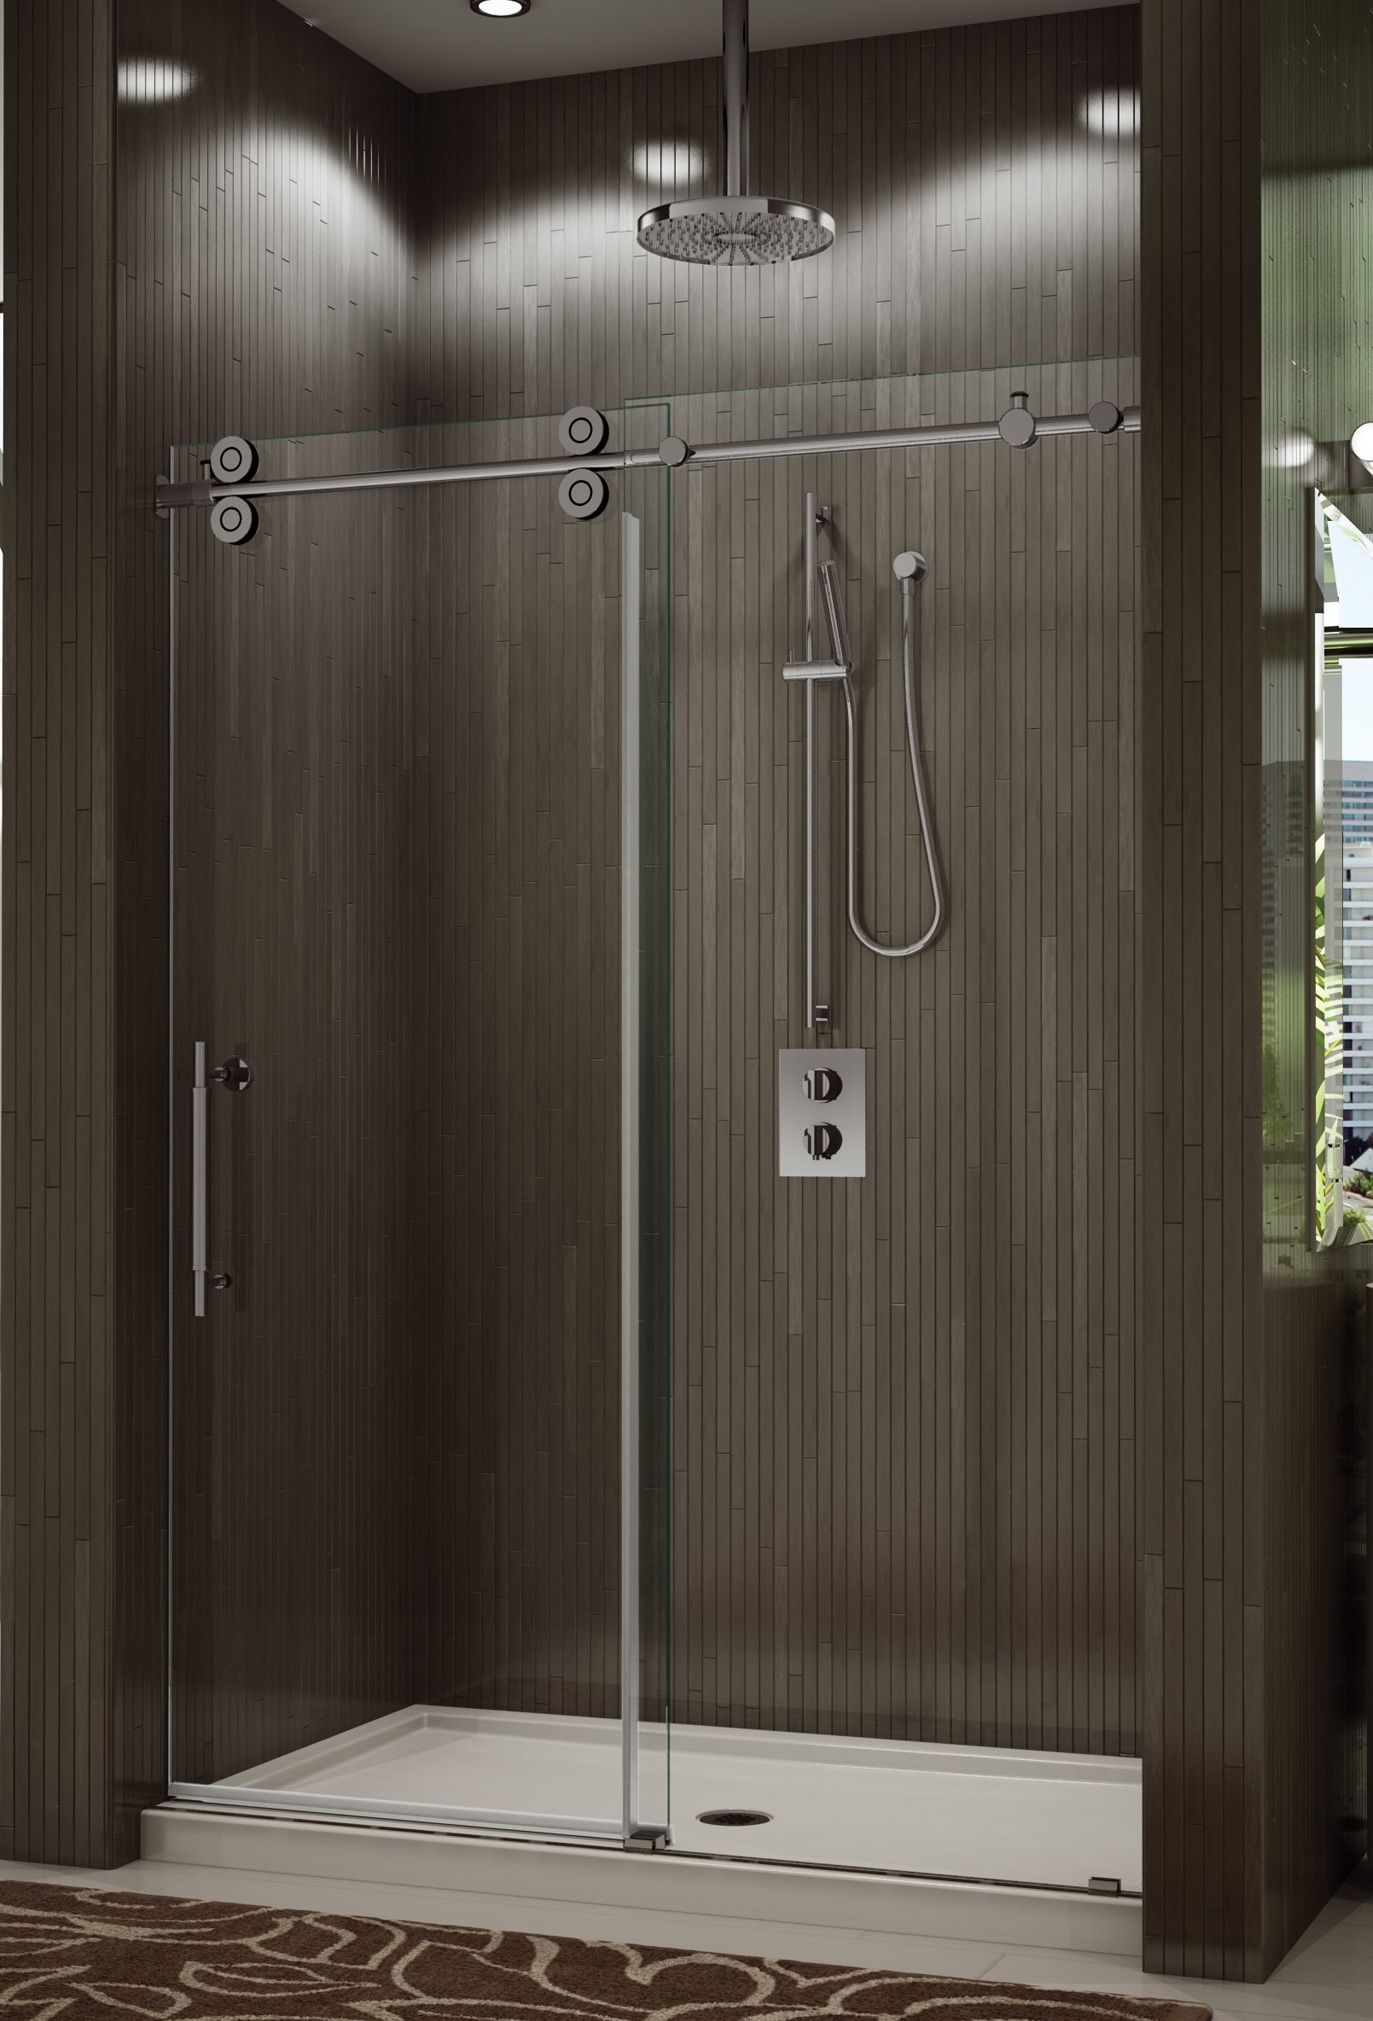 Shower Door Of Canada Inc Shower Doors Frameless Sliding Shower Doors Shower Door Hardware